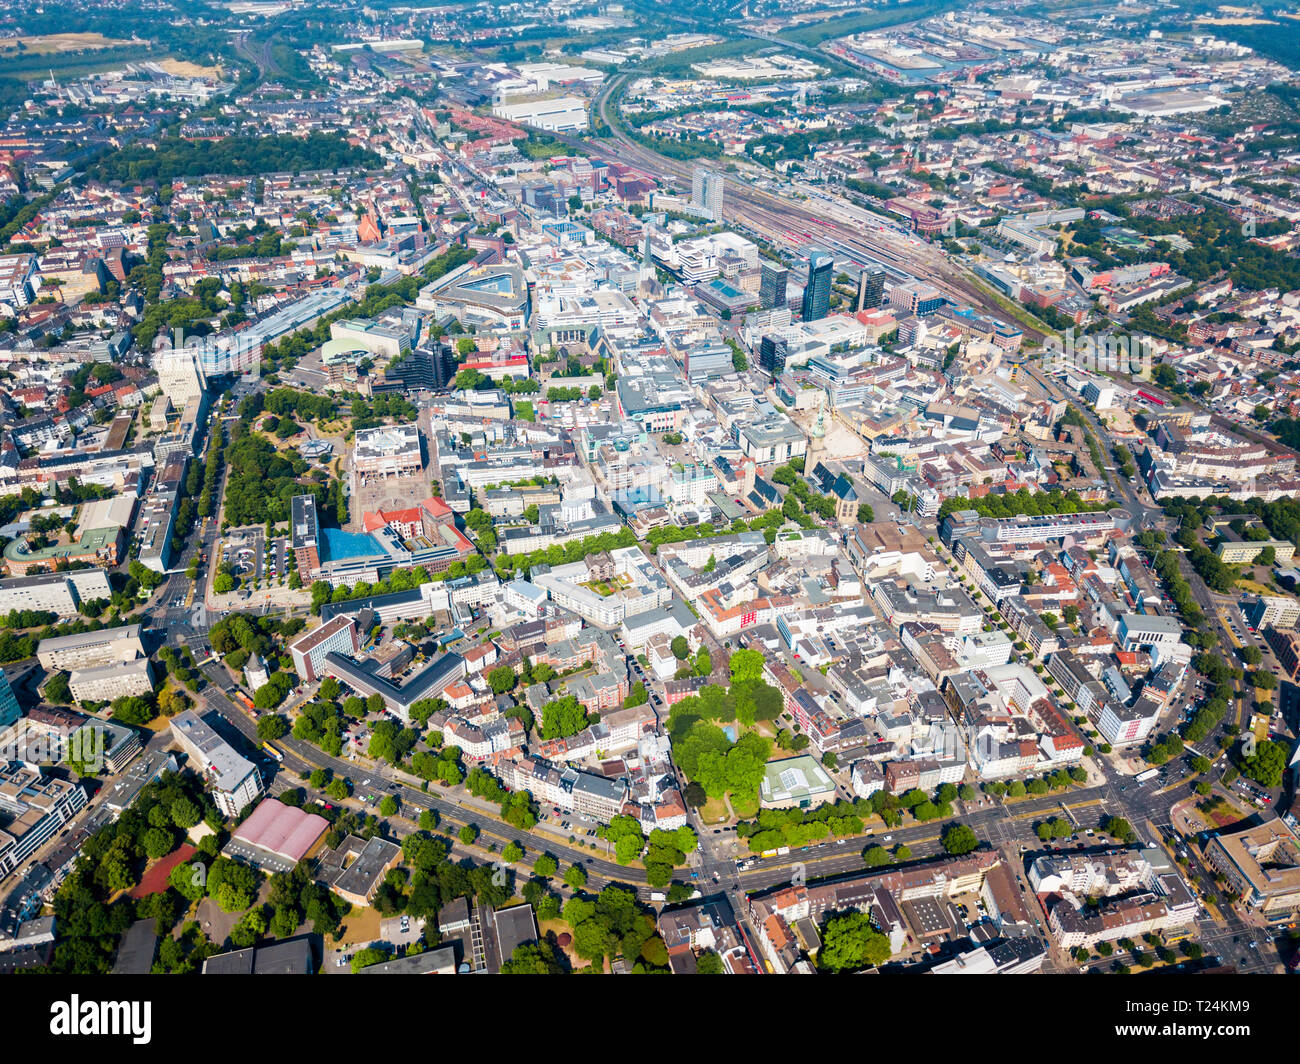 Dortmund city centre aerial panoramic view in Germany Stock Photo - Alamy